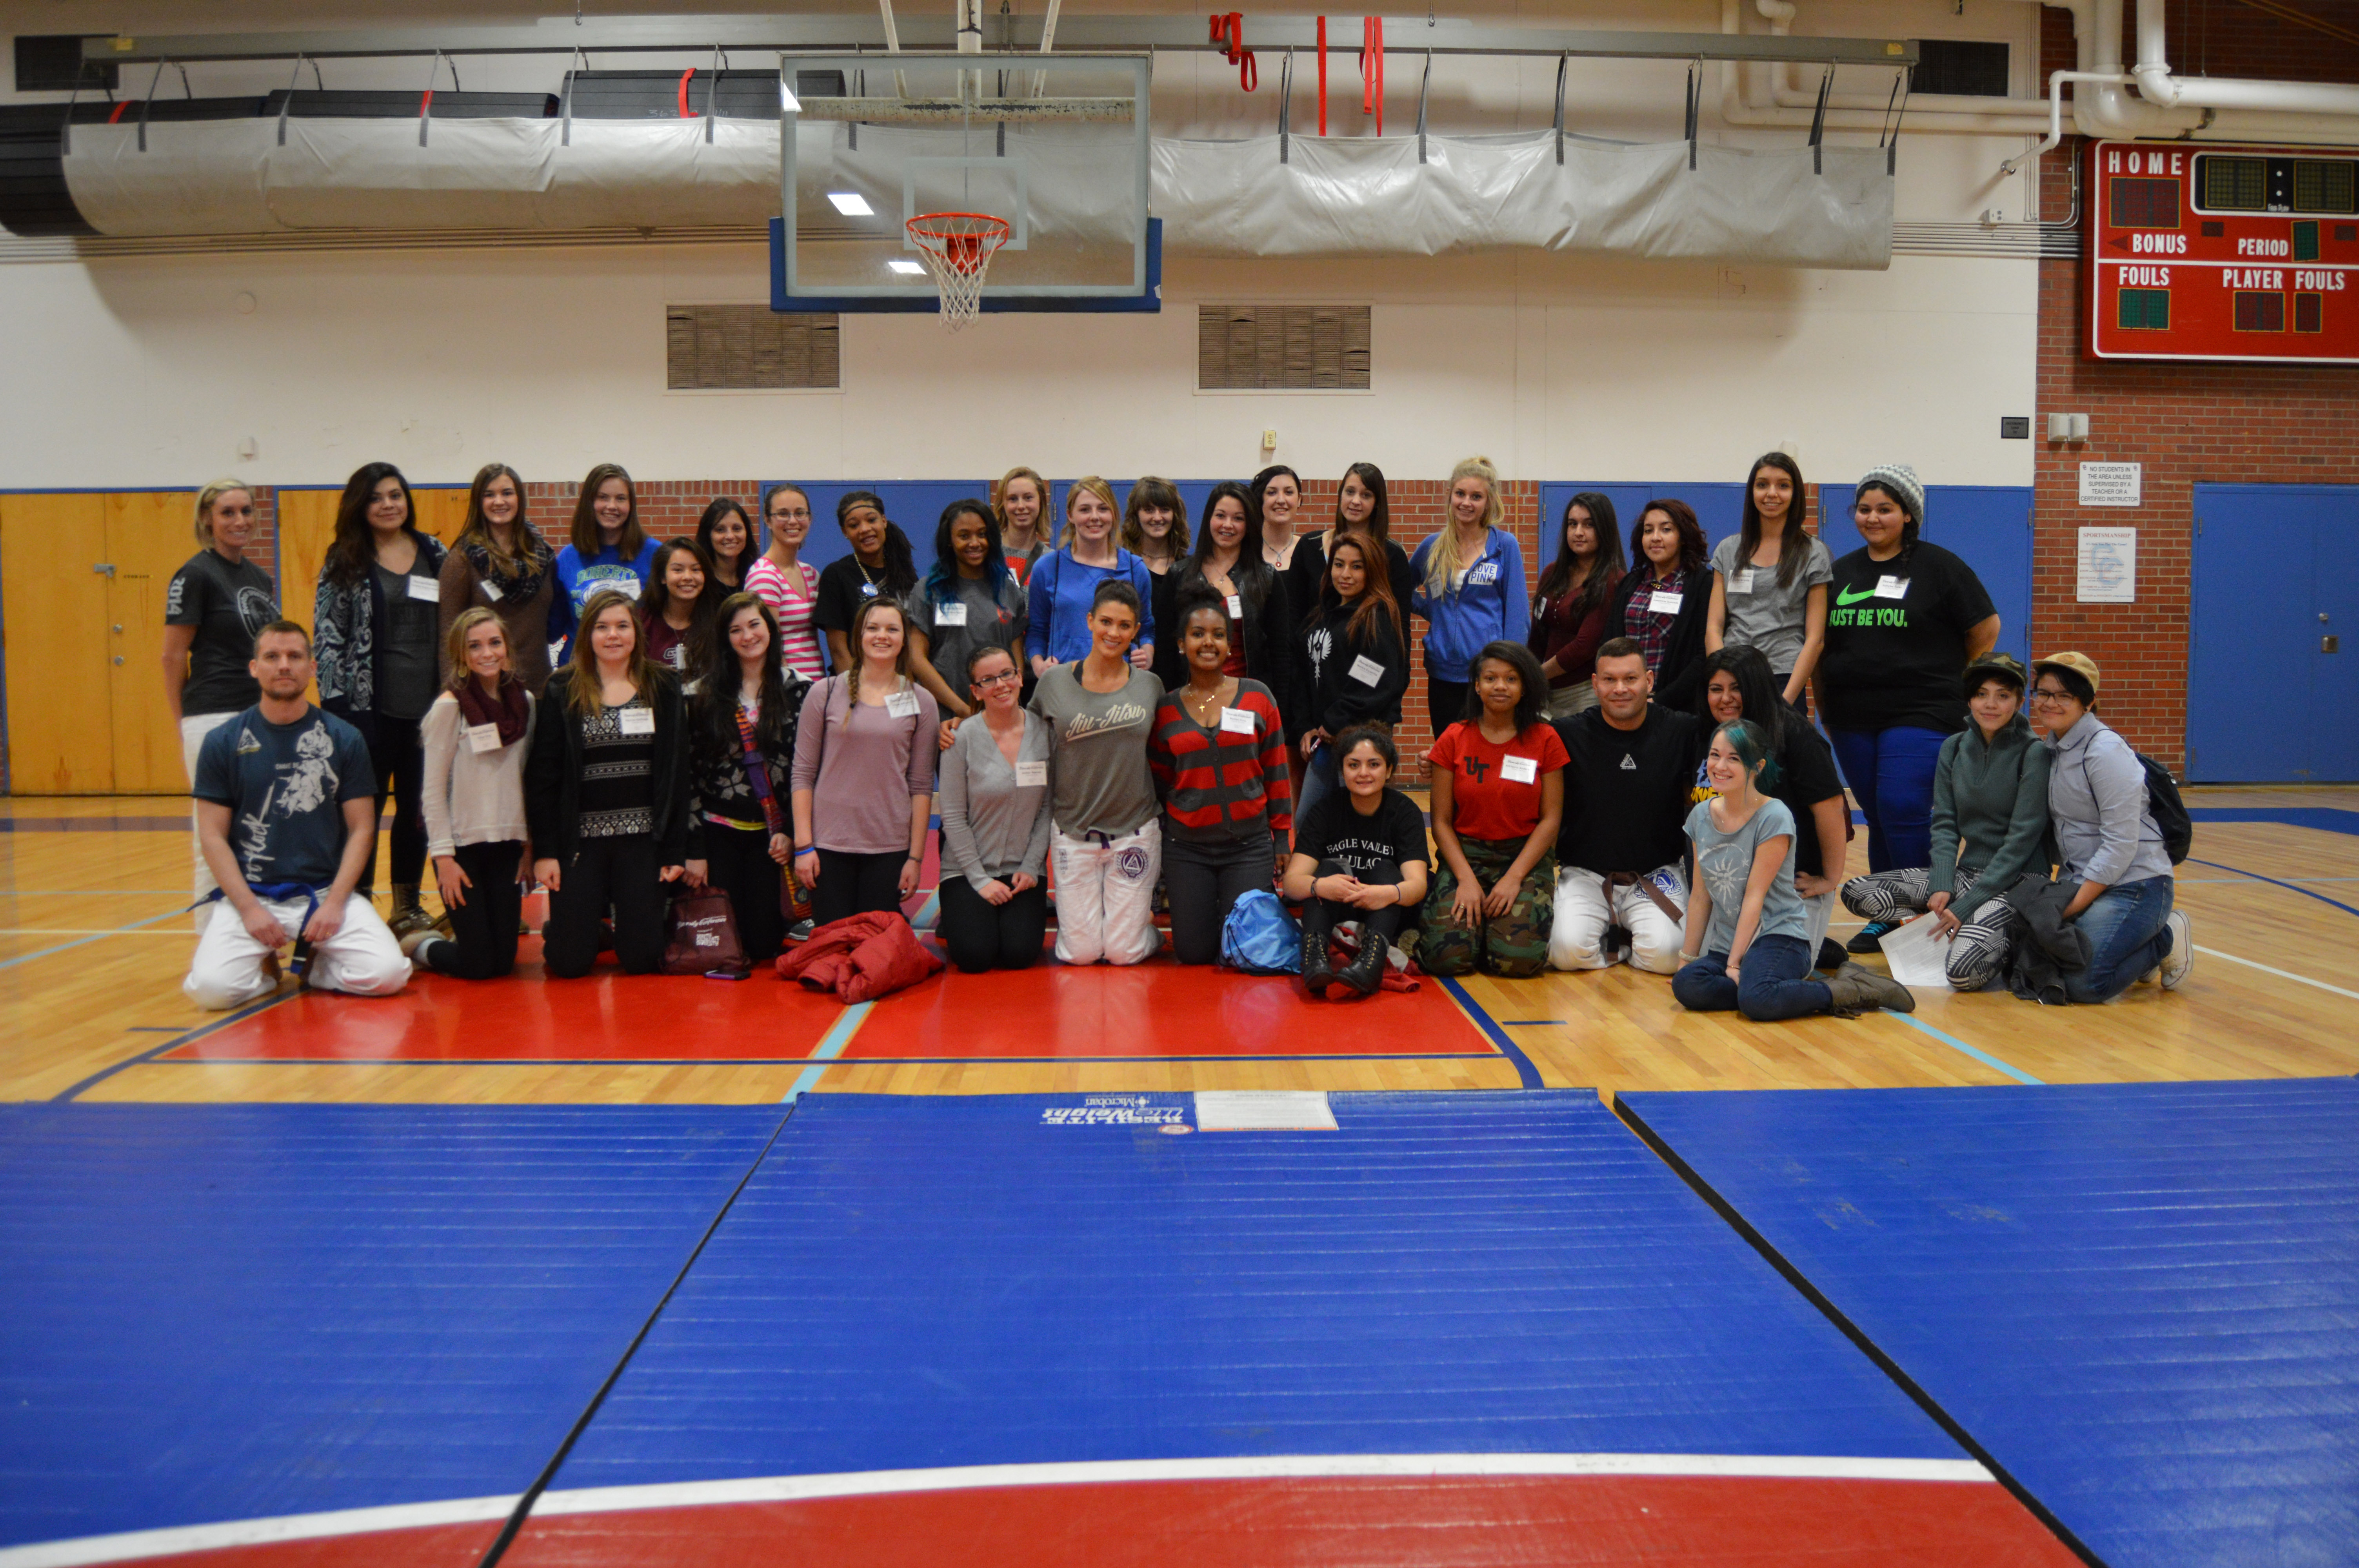 Eve returns to Cherry Creek High School to offer self-defense course!